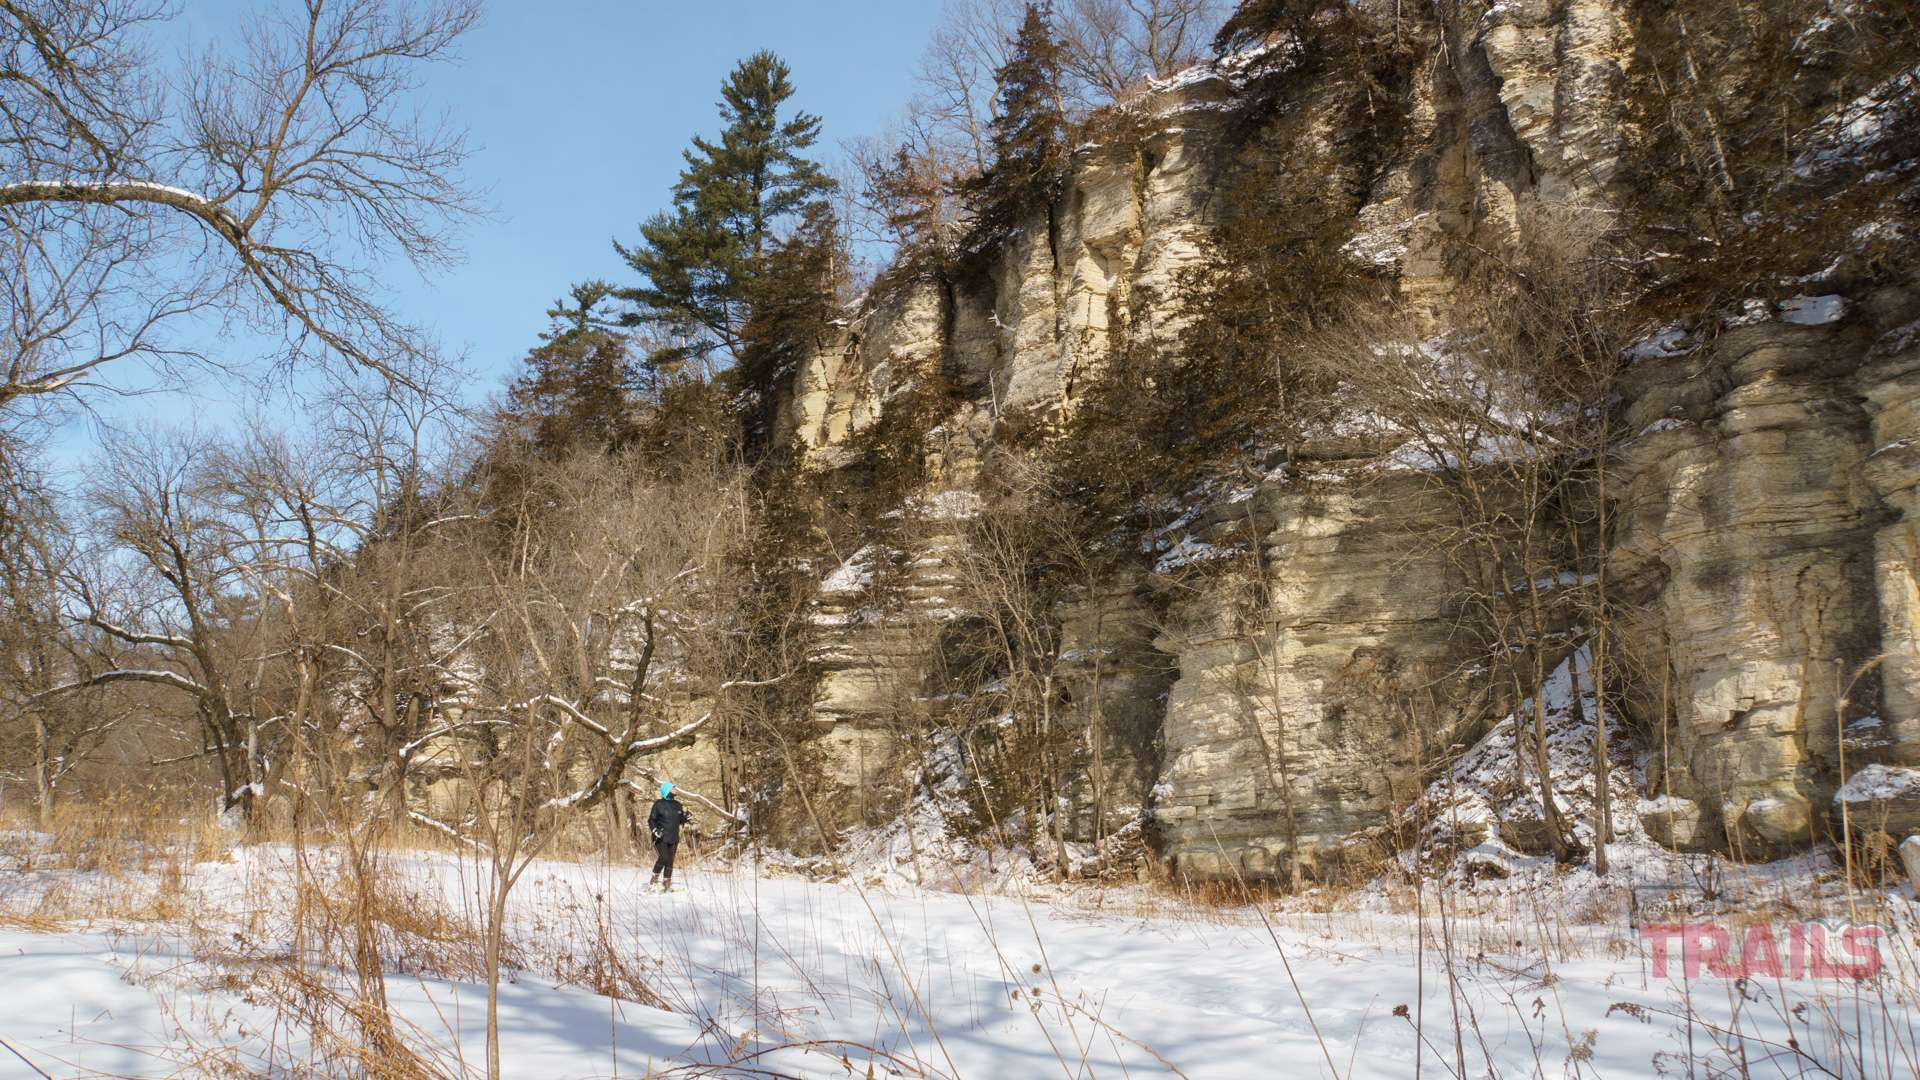 A woman on snowshoes stops to look at a bluffy ridge